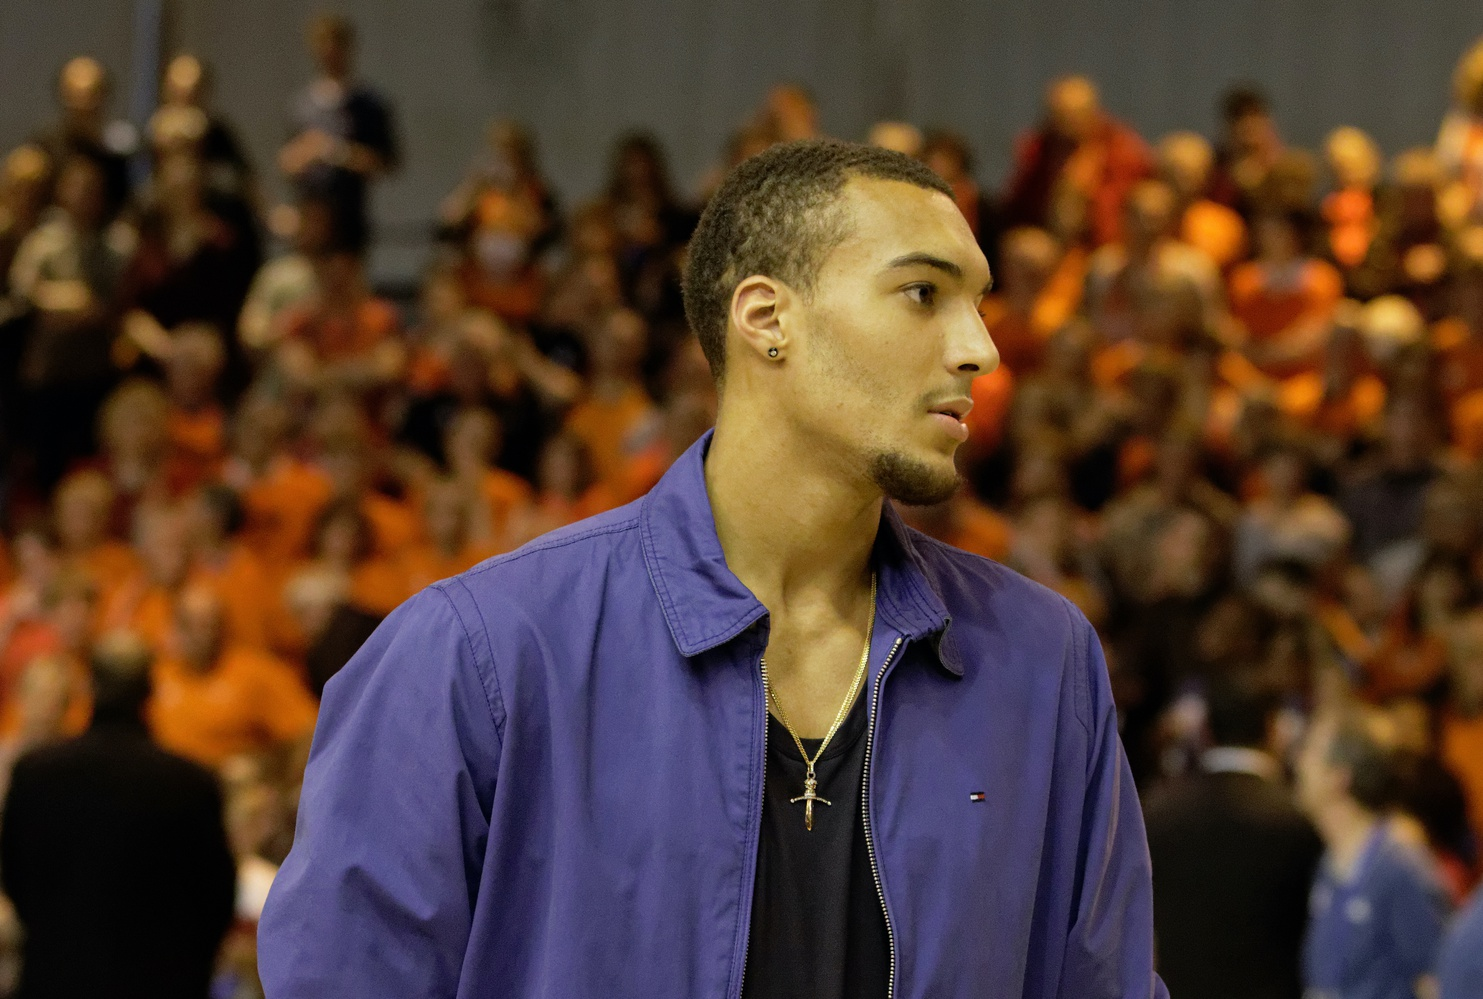 Rudy Gobert-Bourgarel, a French professional basketball player for the Utah Jazz,  tested positive for COVID-19 on Mar. 11.